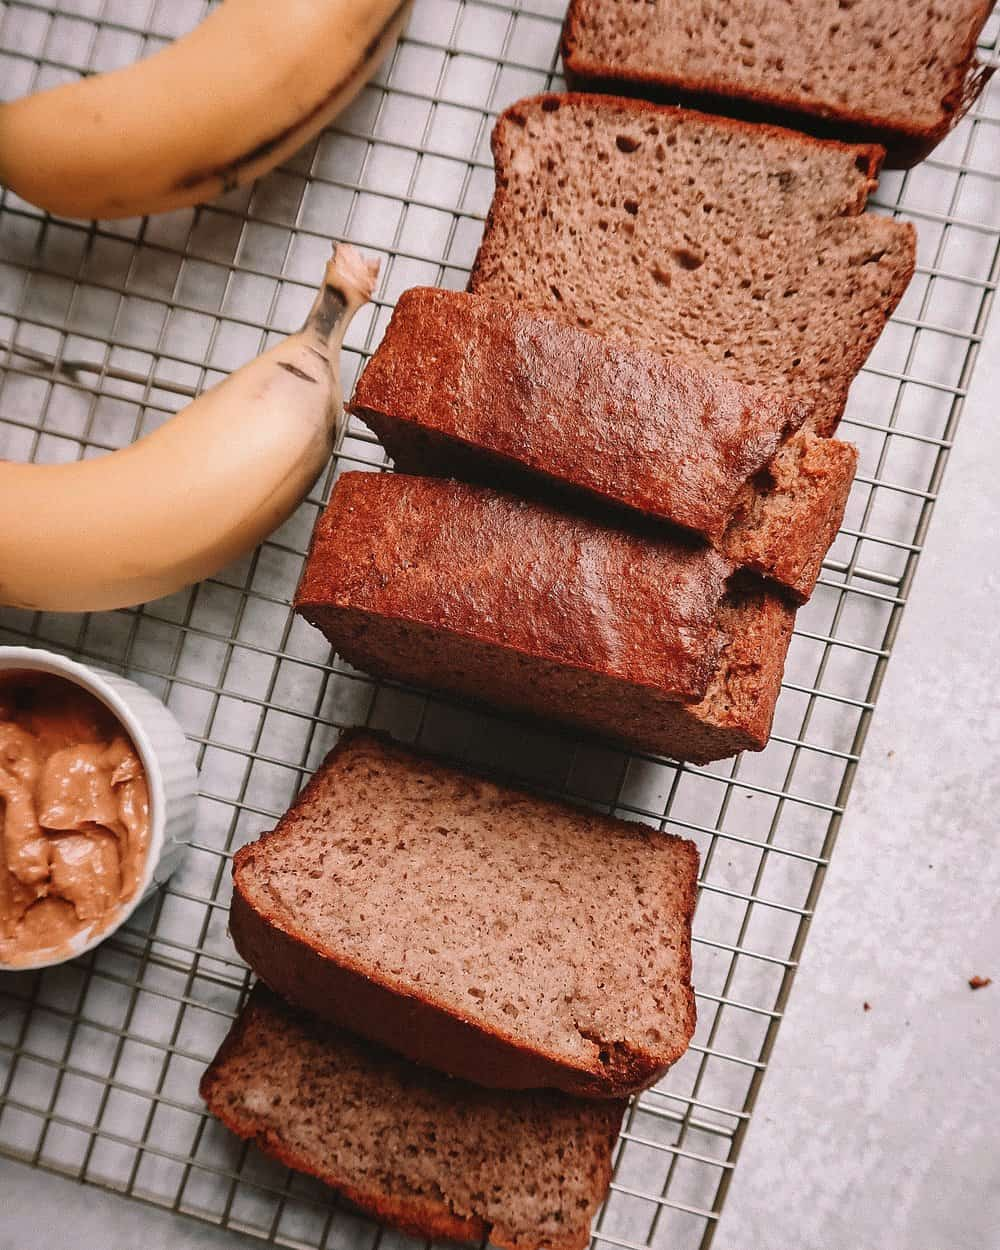 CINNAMON BANANA BREAD - 1 1/2 cups almond flour1/4 cup tapioca flour3 tb coconut flour4 super ripe bananas (if they are large, use 3)3 eggs1 tsp vanilla extract 2 tb cinnamon1 tsp baking soda1 tsp baking powder1/2 tsp sea salt note: You can add any toppings you want, chocolate chips, nuts, etc.